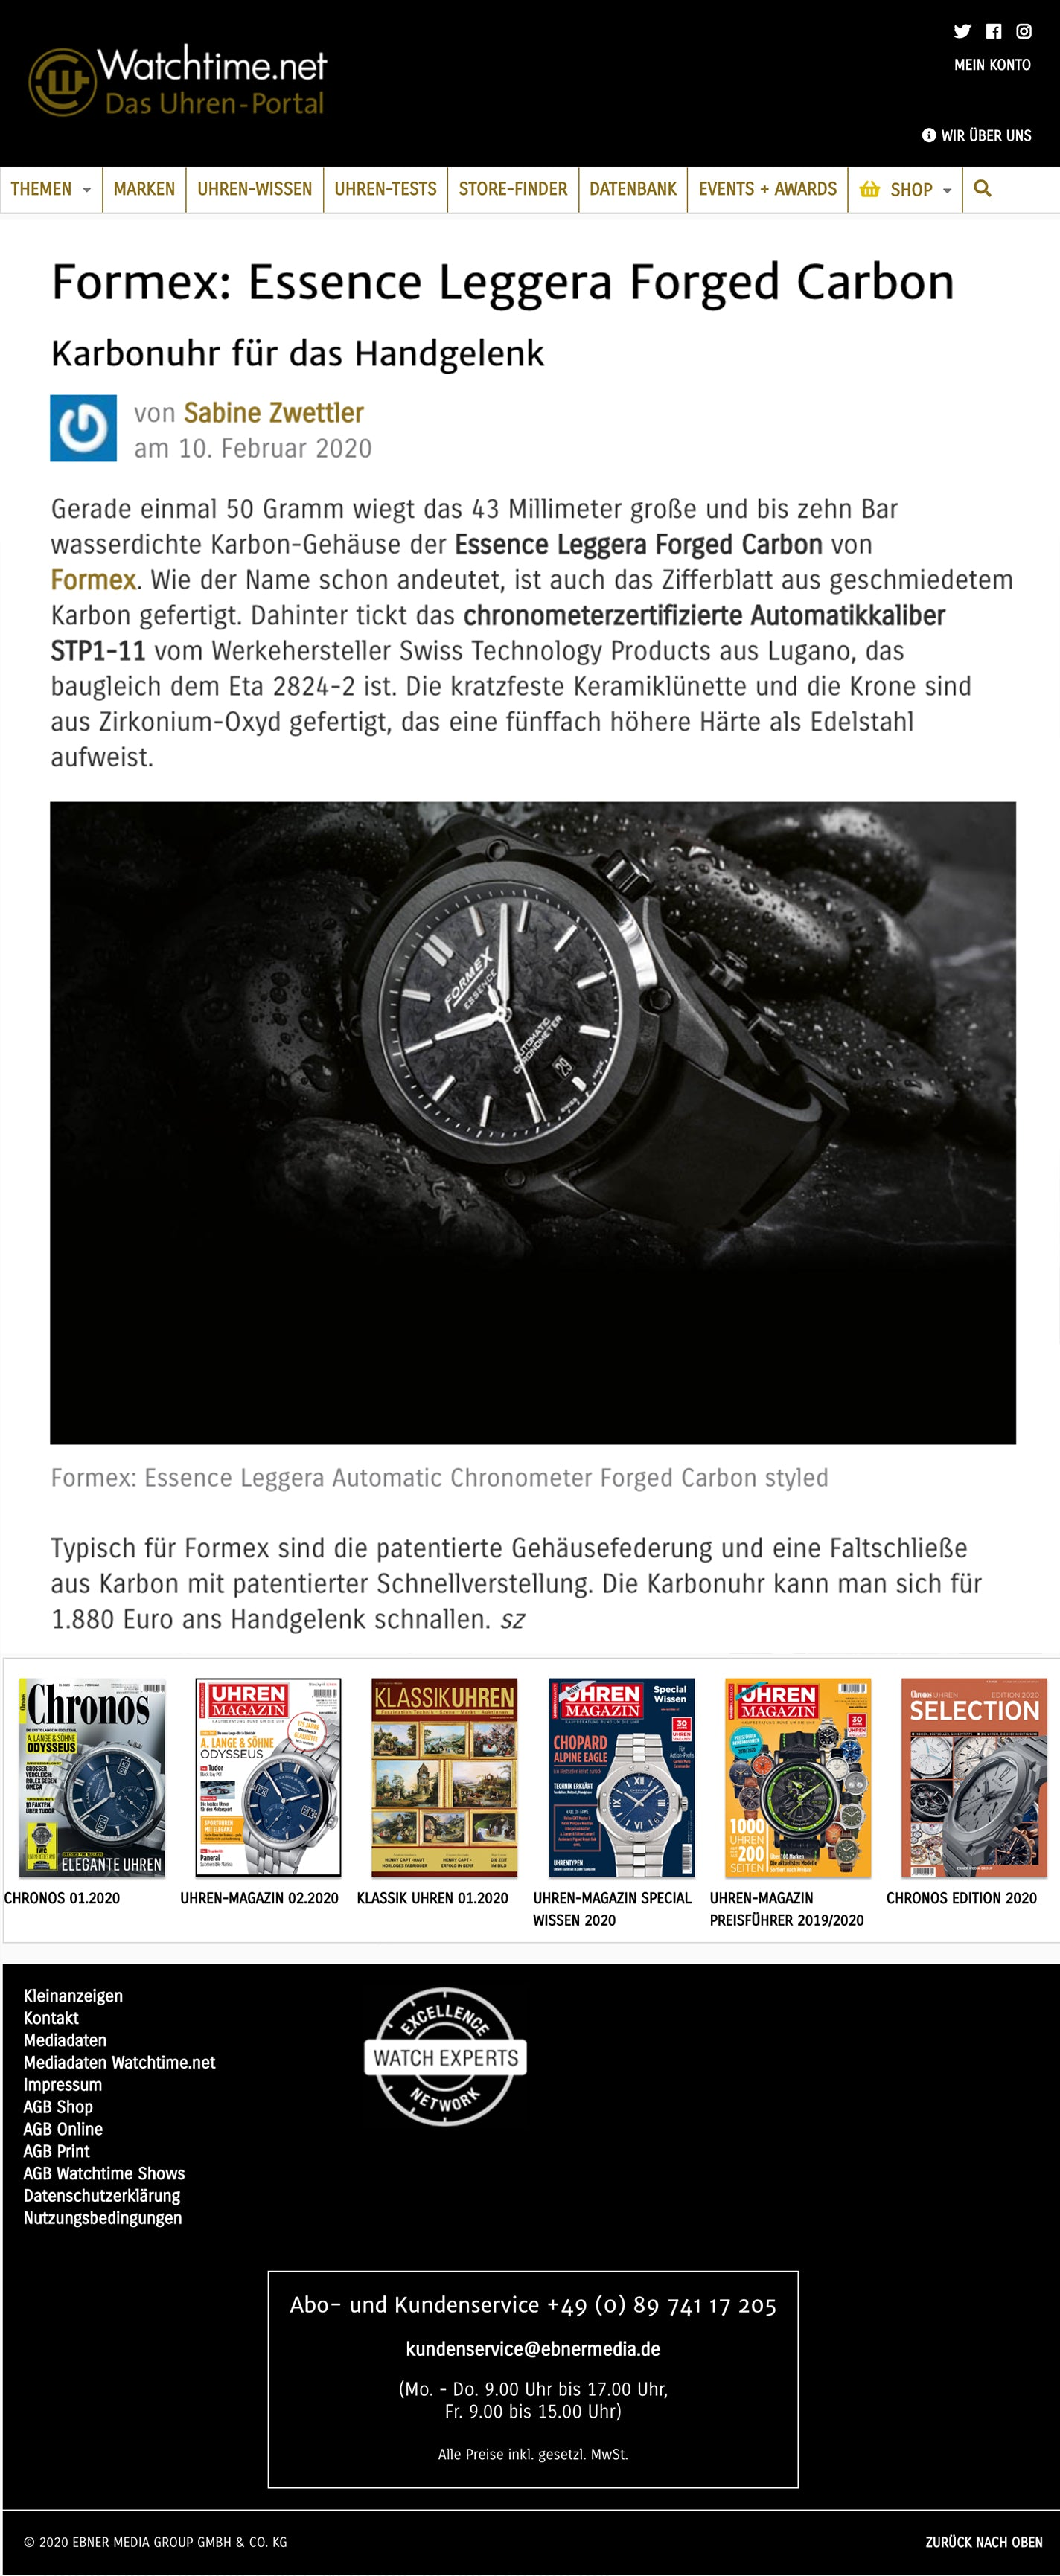 Formex Essence LEGGERA Automatic Chronometer in watchtime.net